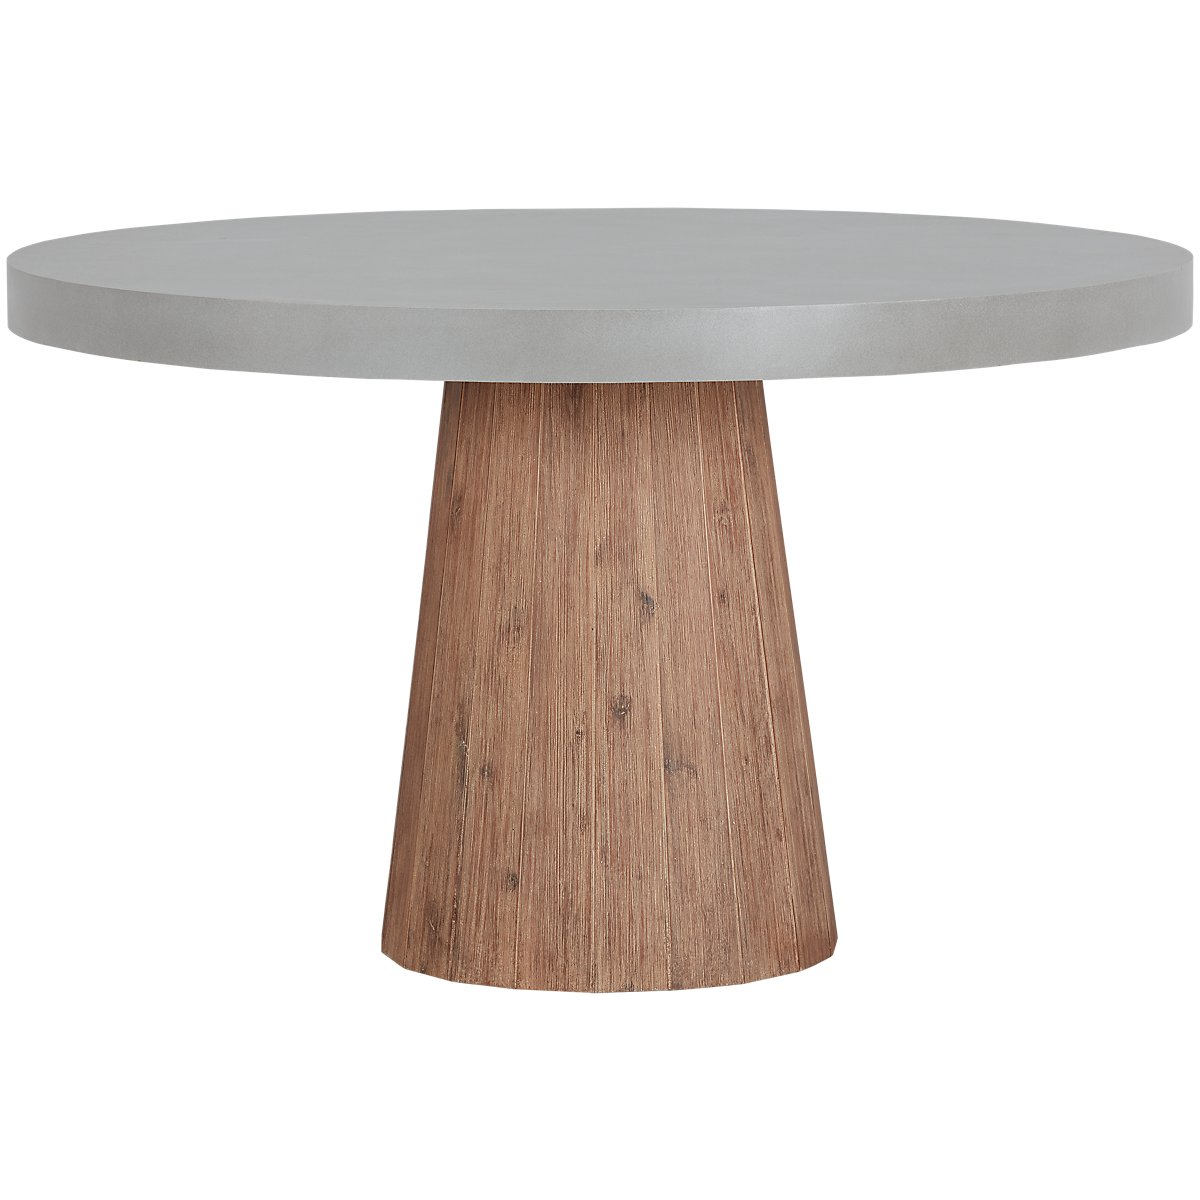 City Furniture Sydney Concrete Round Table